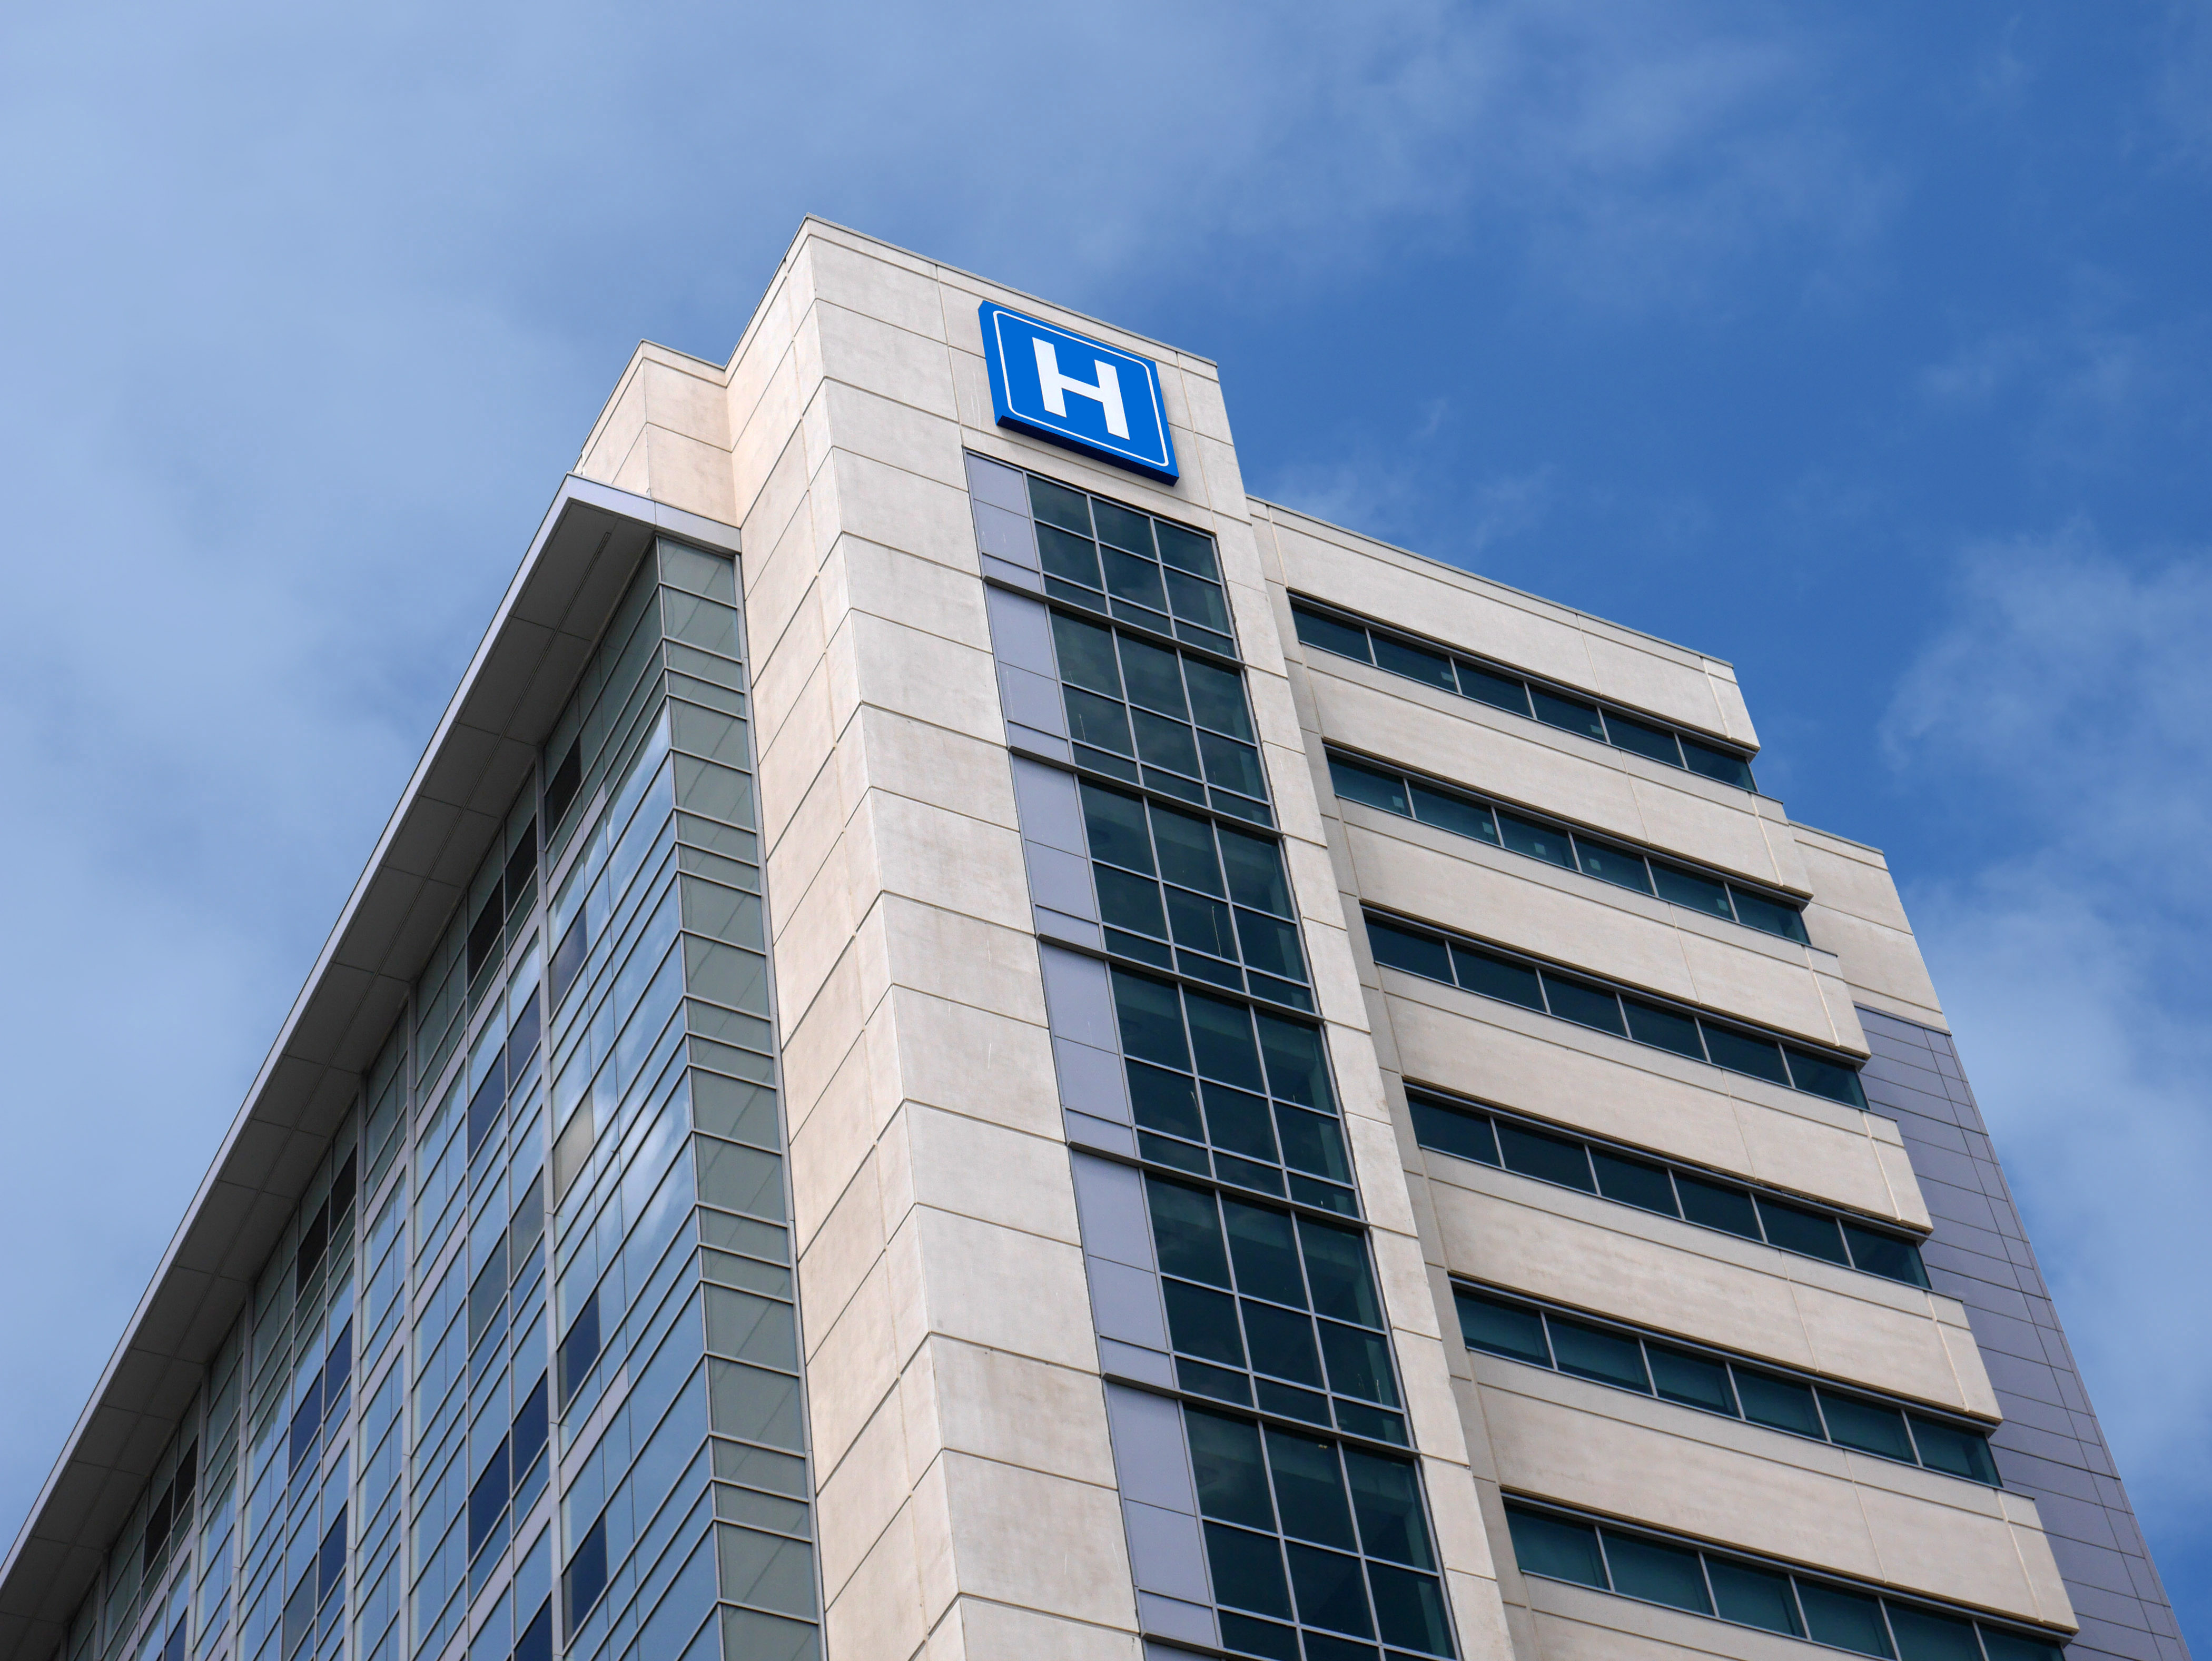 AHA report makes argument that consolidation reduces costs